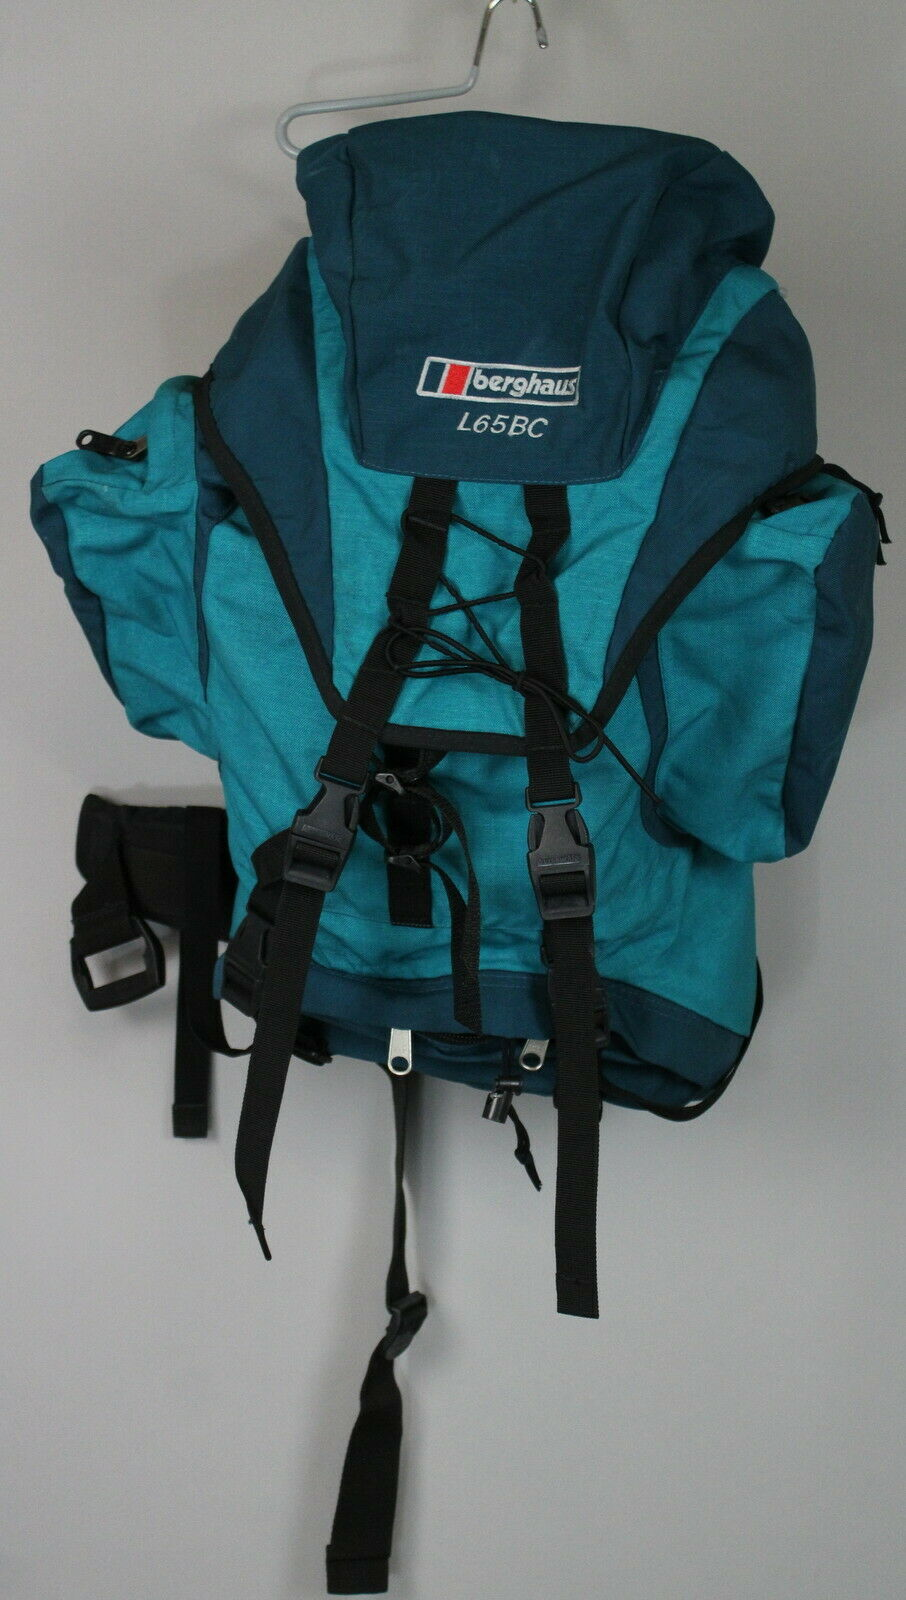 BERGHAUS L65BC ADVENT Wmn 65L, 69x34x19 Vtg Hiking Rucksack   Backpack JS14614